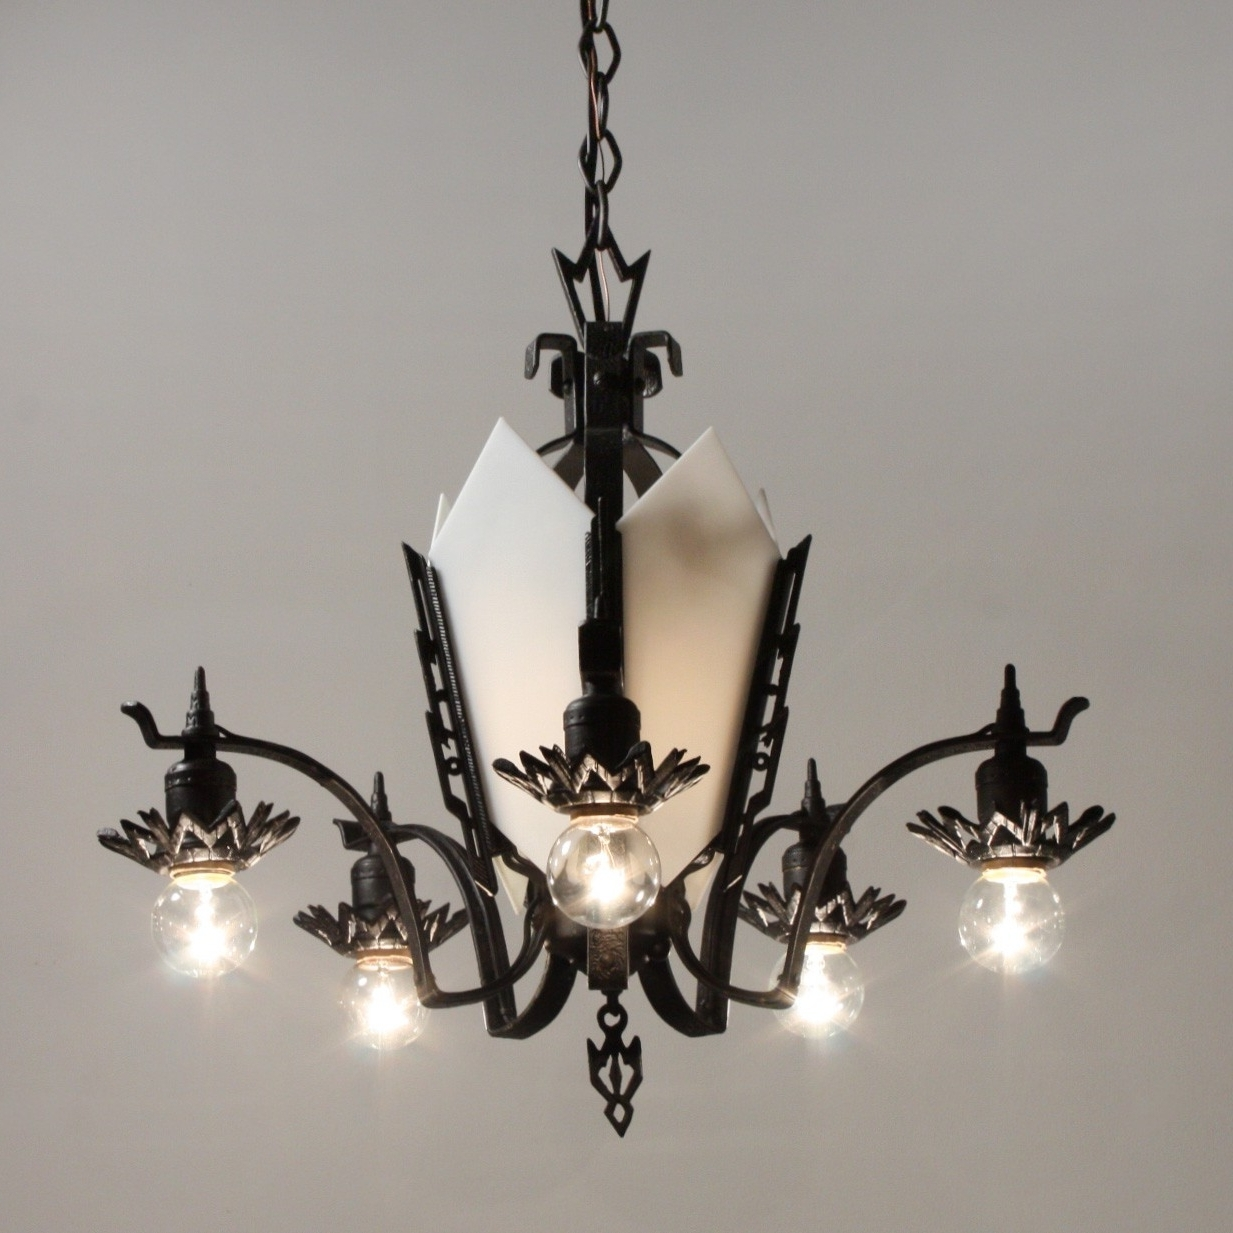 Cast Iron Chandelier Intended For Newest Antique Art Deco Cast Iron Chandelier, C (View 4 of 15)